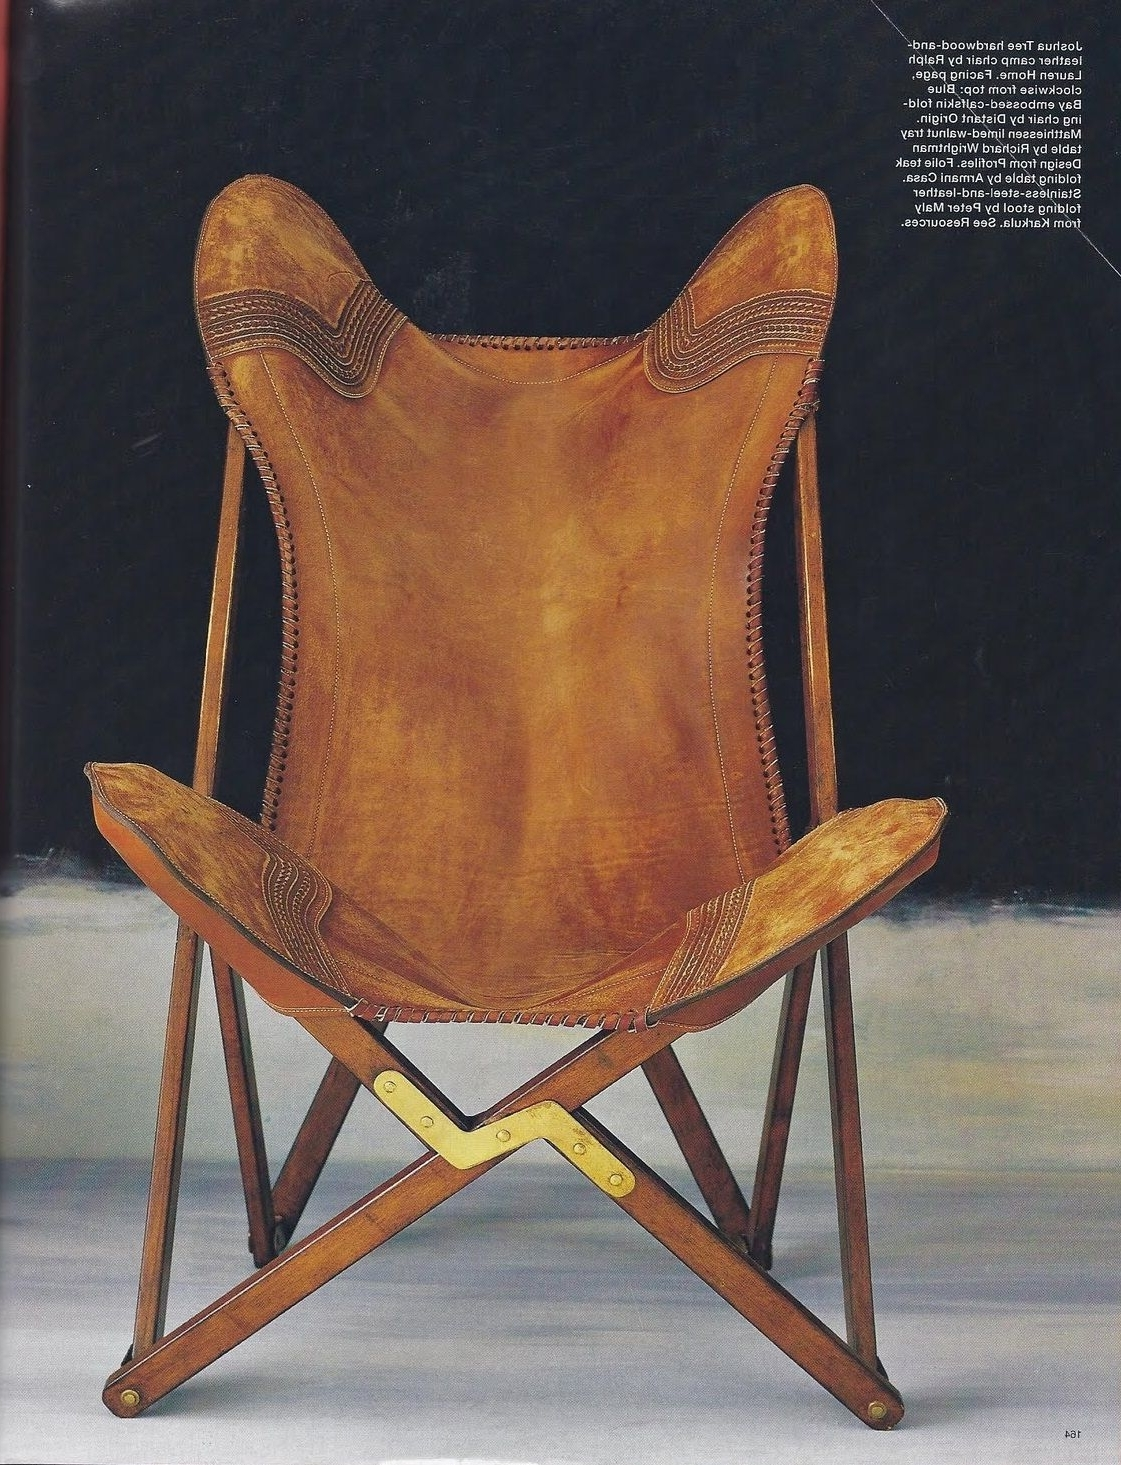 Ralph Lauren Joshua Tree Camp Chair Picture Speaks For Itself–Just In Well Known Laurent Upholstered Side Chairs (Gallery 5 of 20)